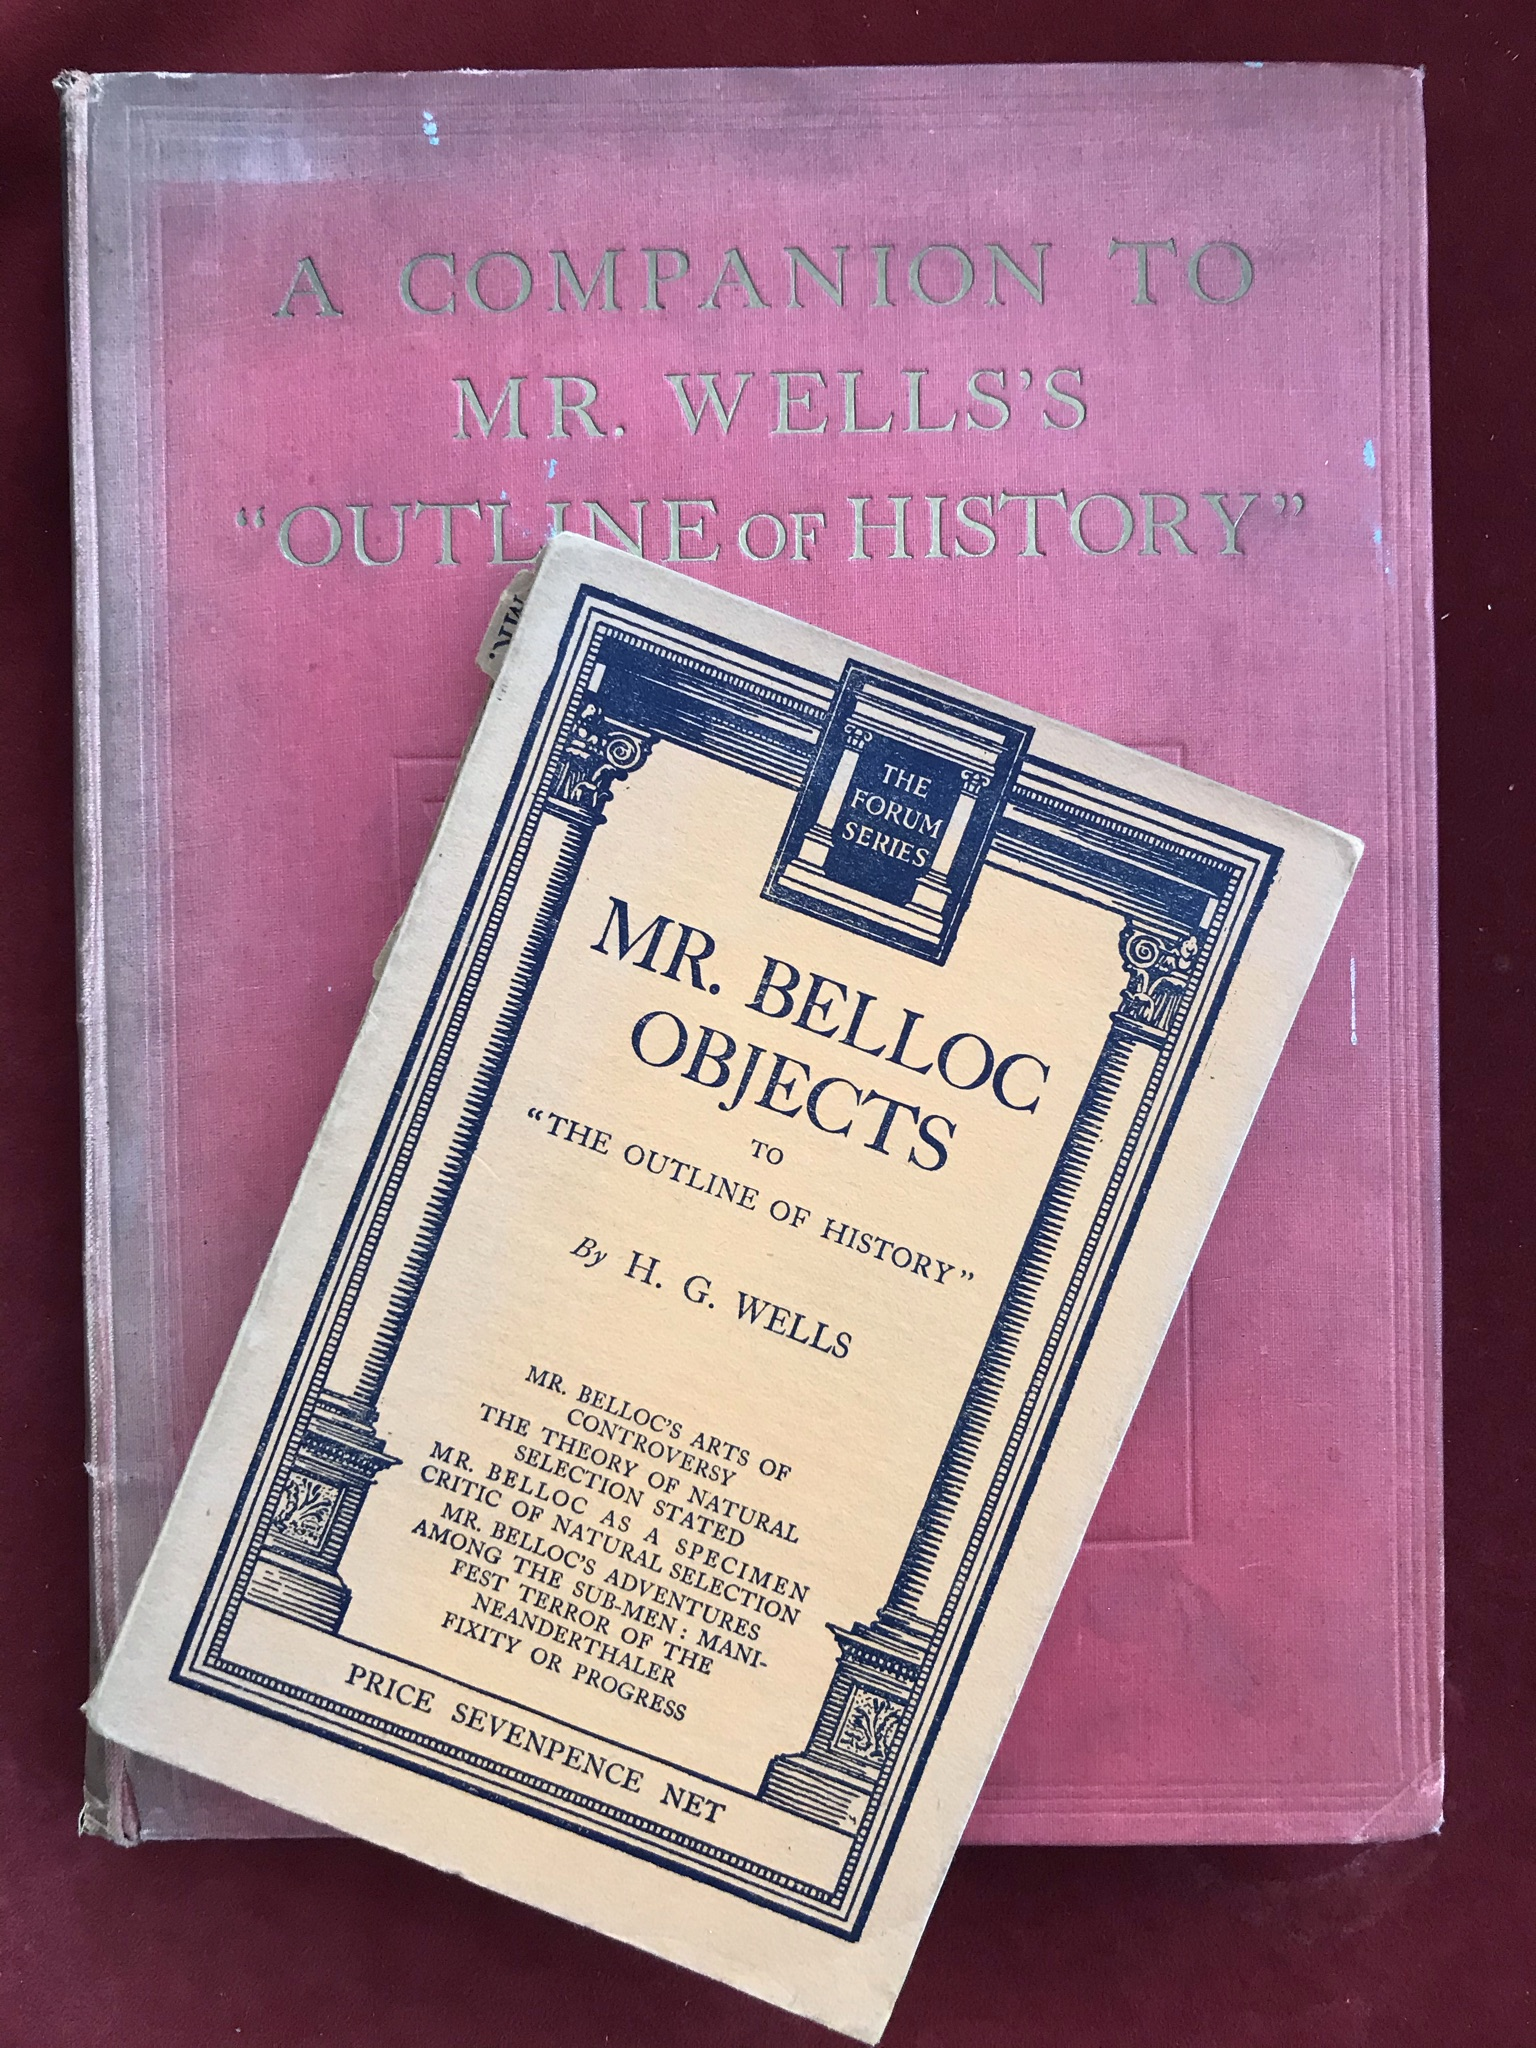 Mr. Belloc Objects to the Outline of HistoryFirst edition, very good condition, together withA